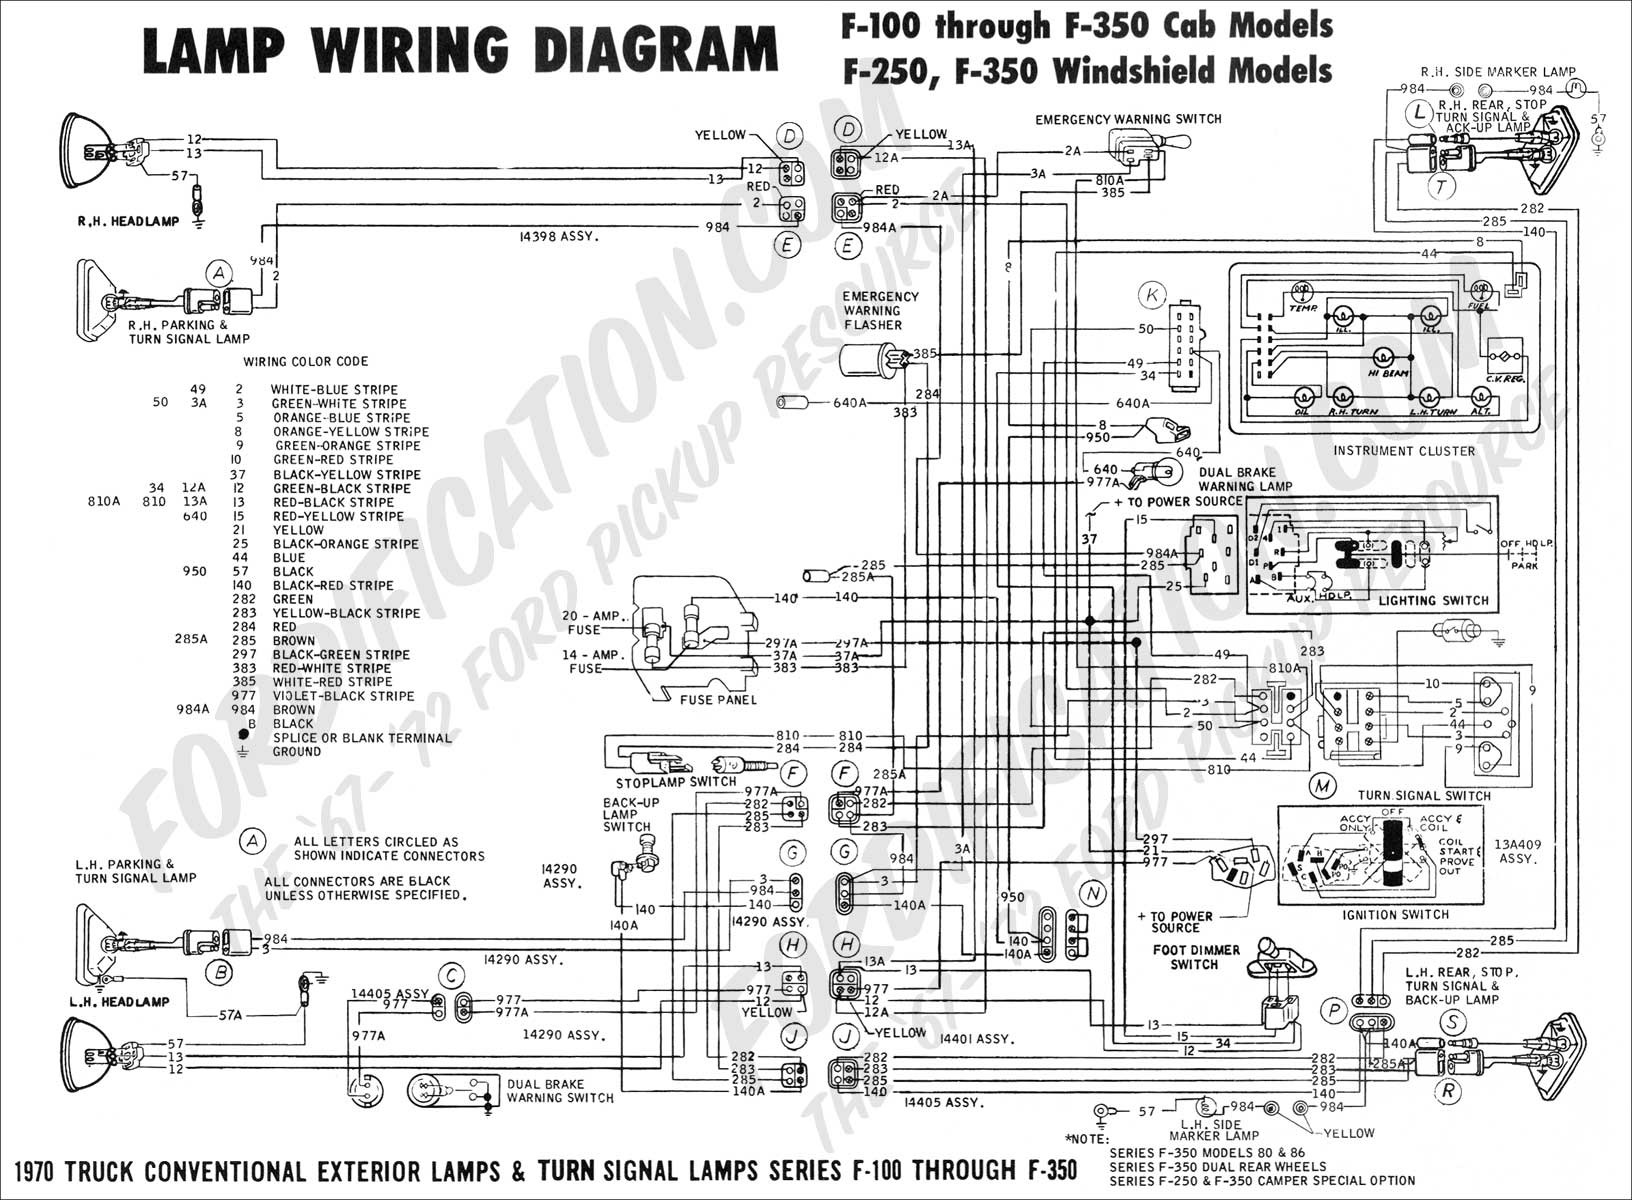 2006 ford f250 headlight wiring diagram 2006 ford f250 headlight 2006 ford f250 headlight wiring diagram 2008 ford f250 trailer wiring diagram jodebal com